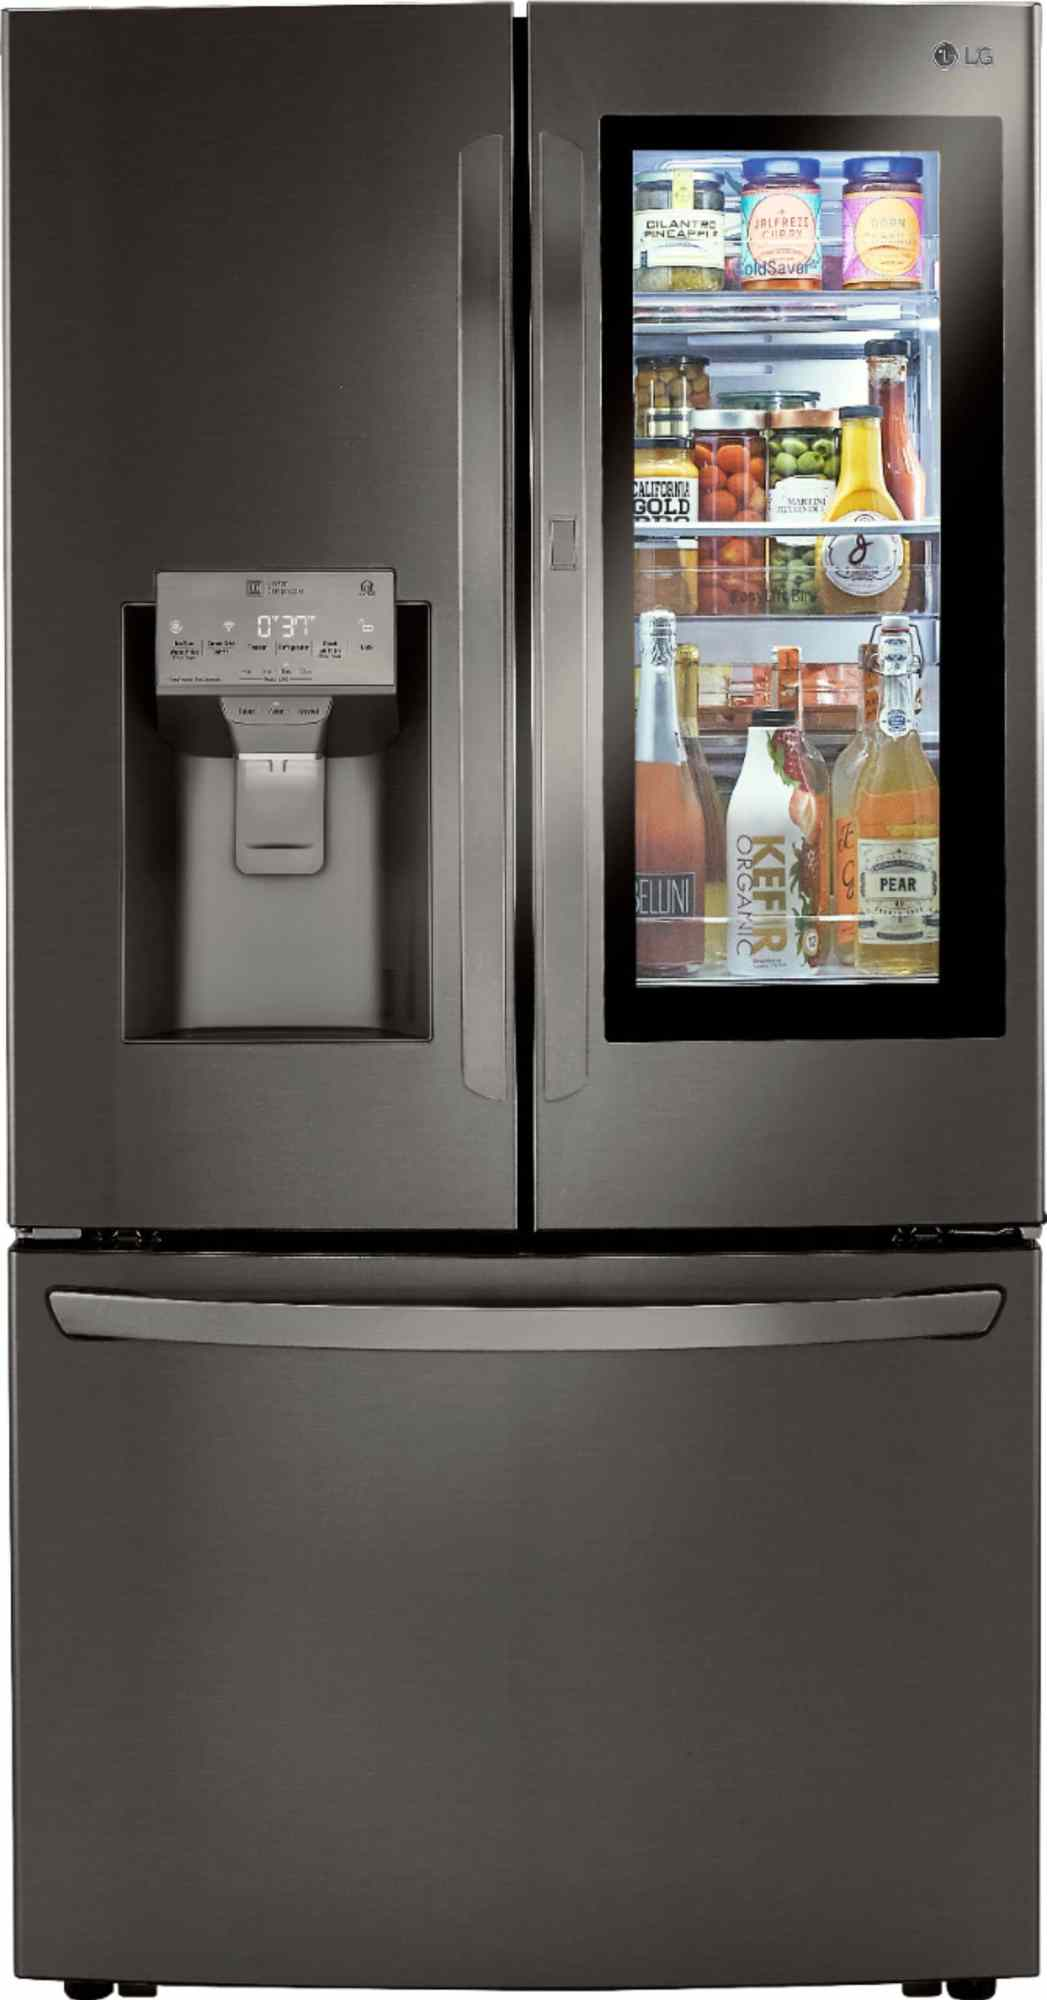 LG InstaView™ Door-in-Door® Refrigerator with Craft Ice™. LG's newest InstaView™ Door-in-Door® refrigerator with Craft Ice™ has everything you need to become the ultimate home entertainer. Purchase LG's newest refirdgerator in store or online at Best Buy.